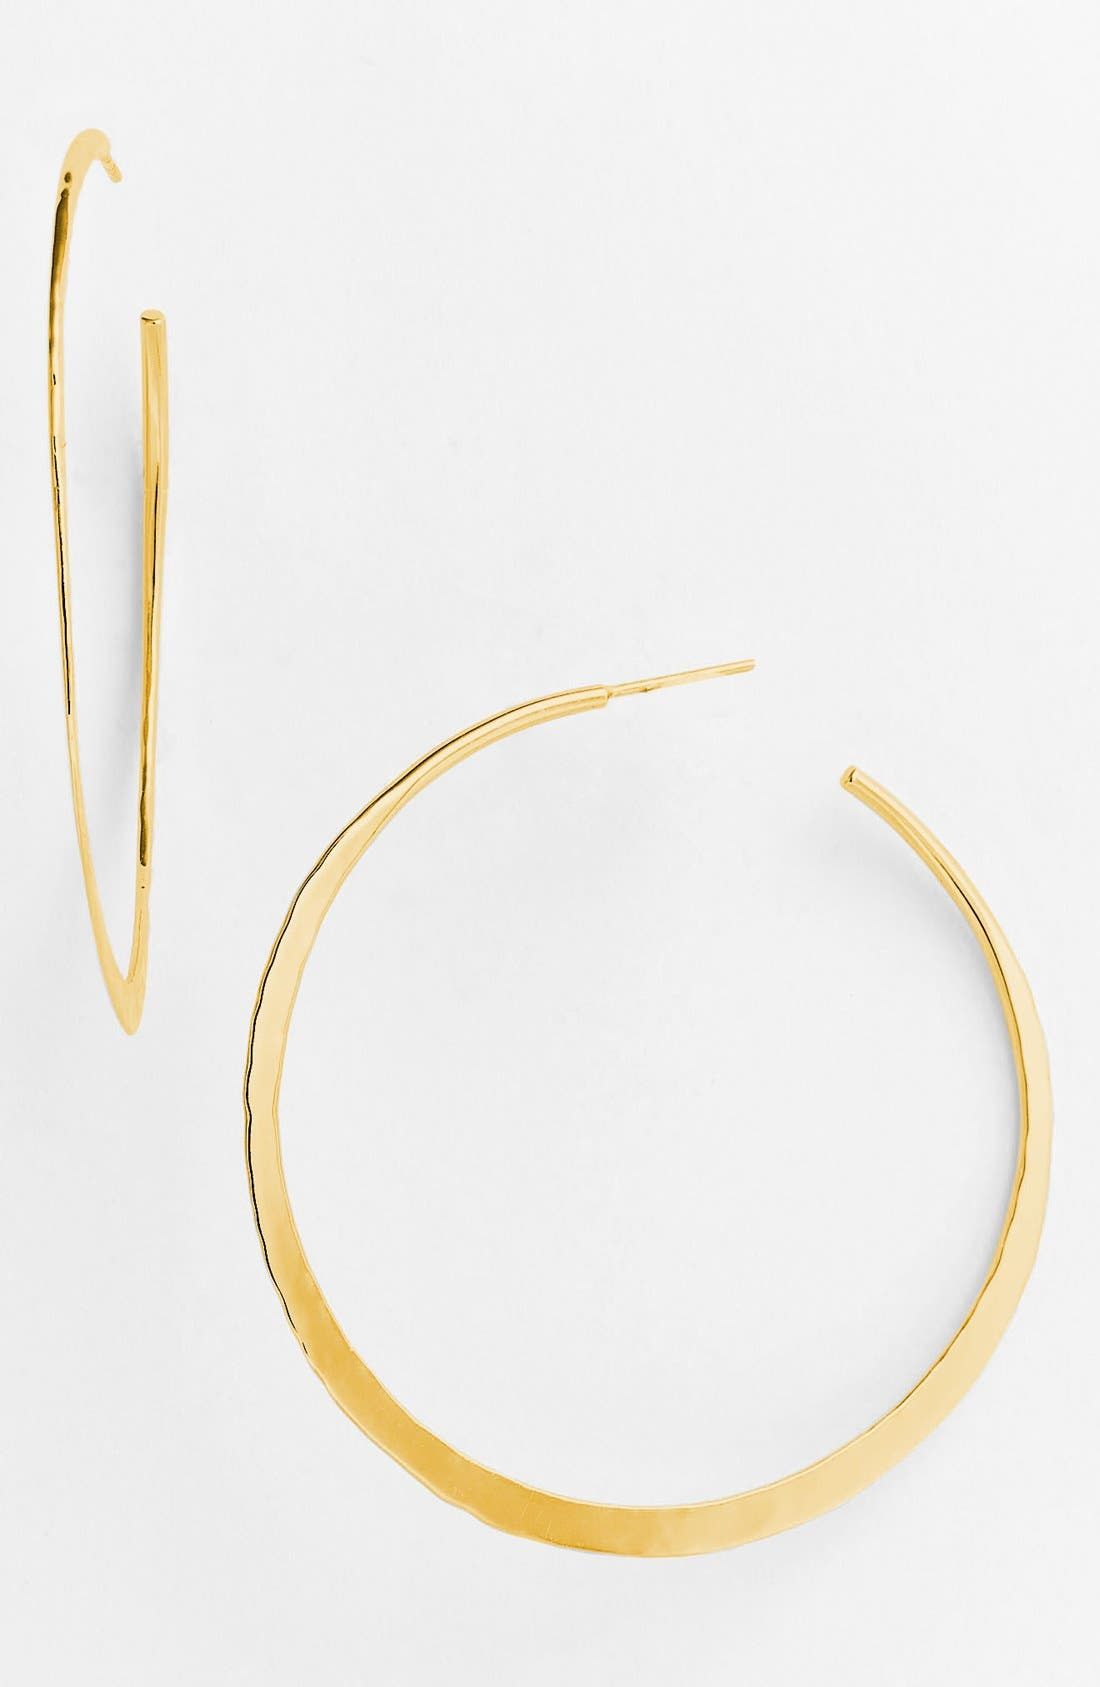 Main Image - Argento Vivo Hammered Crescent Large Hoop Earrings